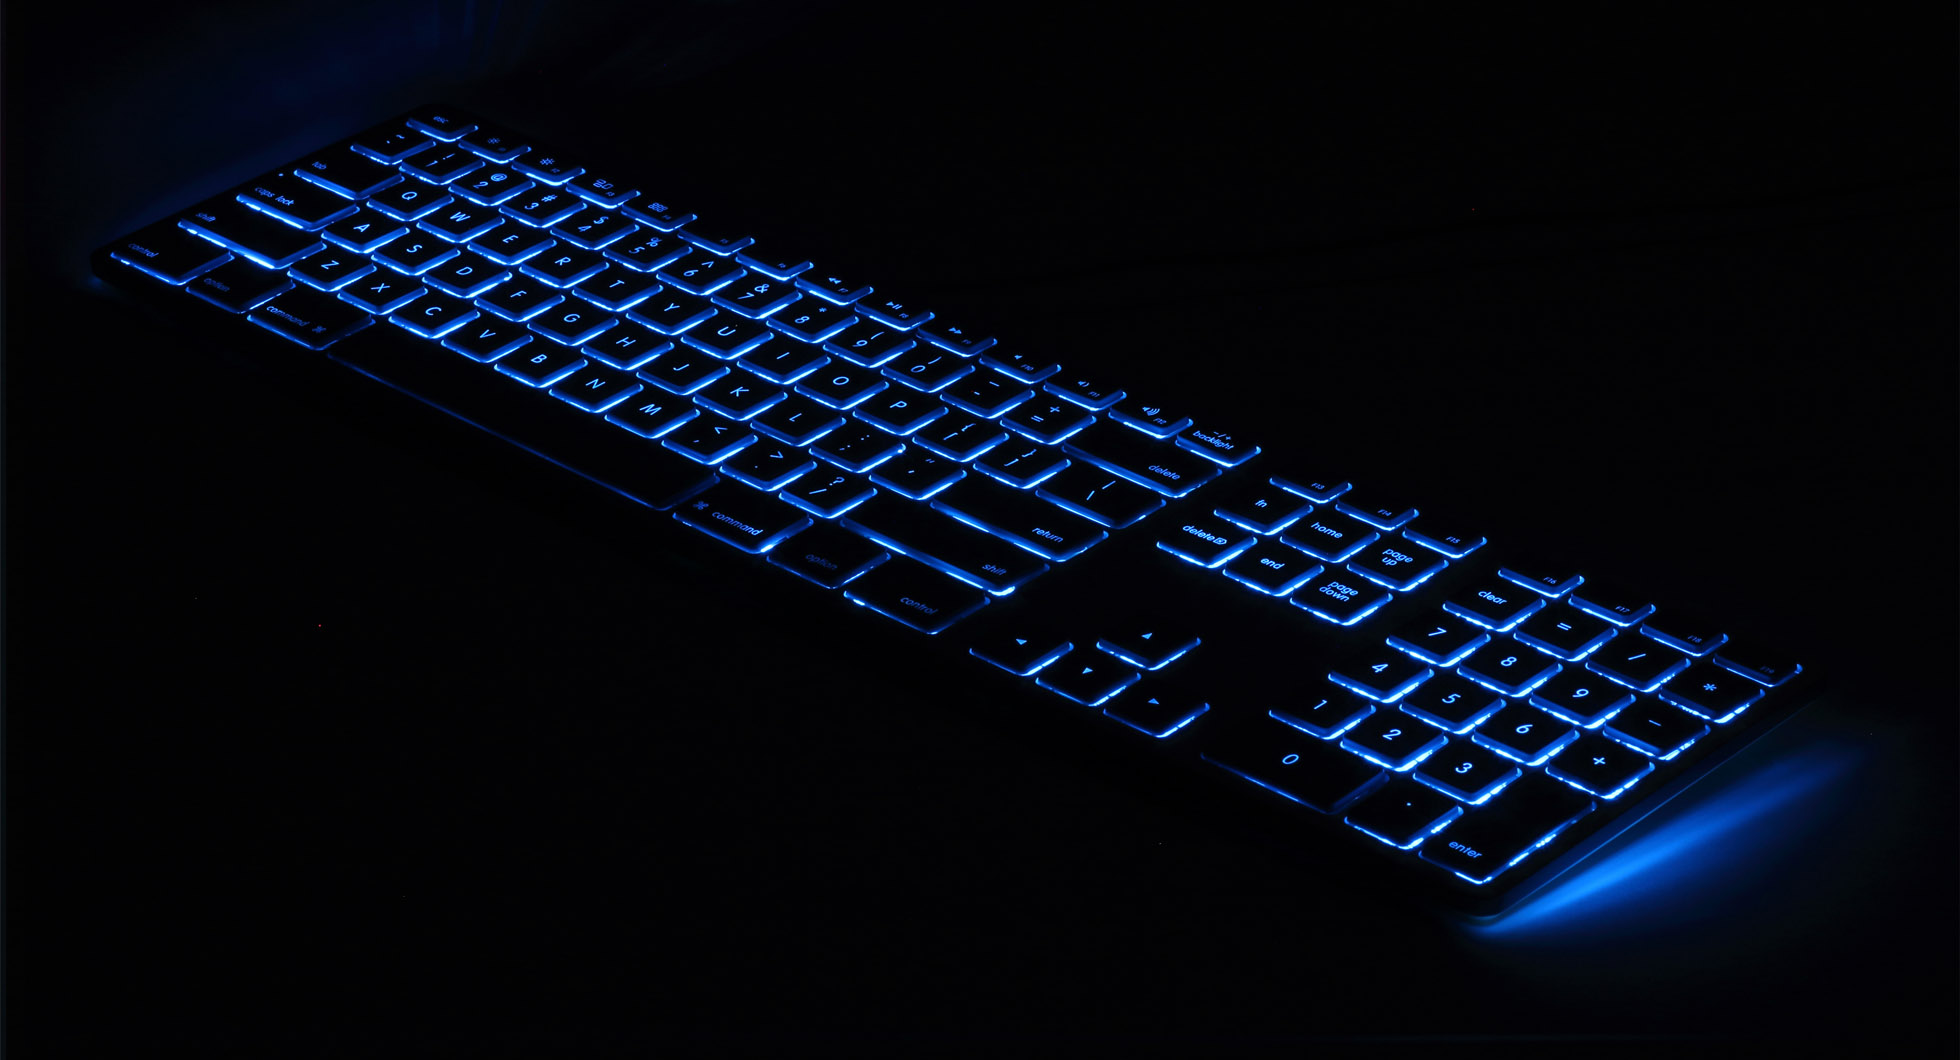 Matias Announces RGB-Backlit Version of Wired Aluminum Keyboard for Mac